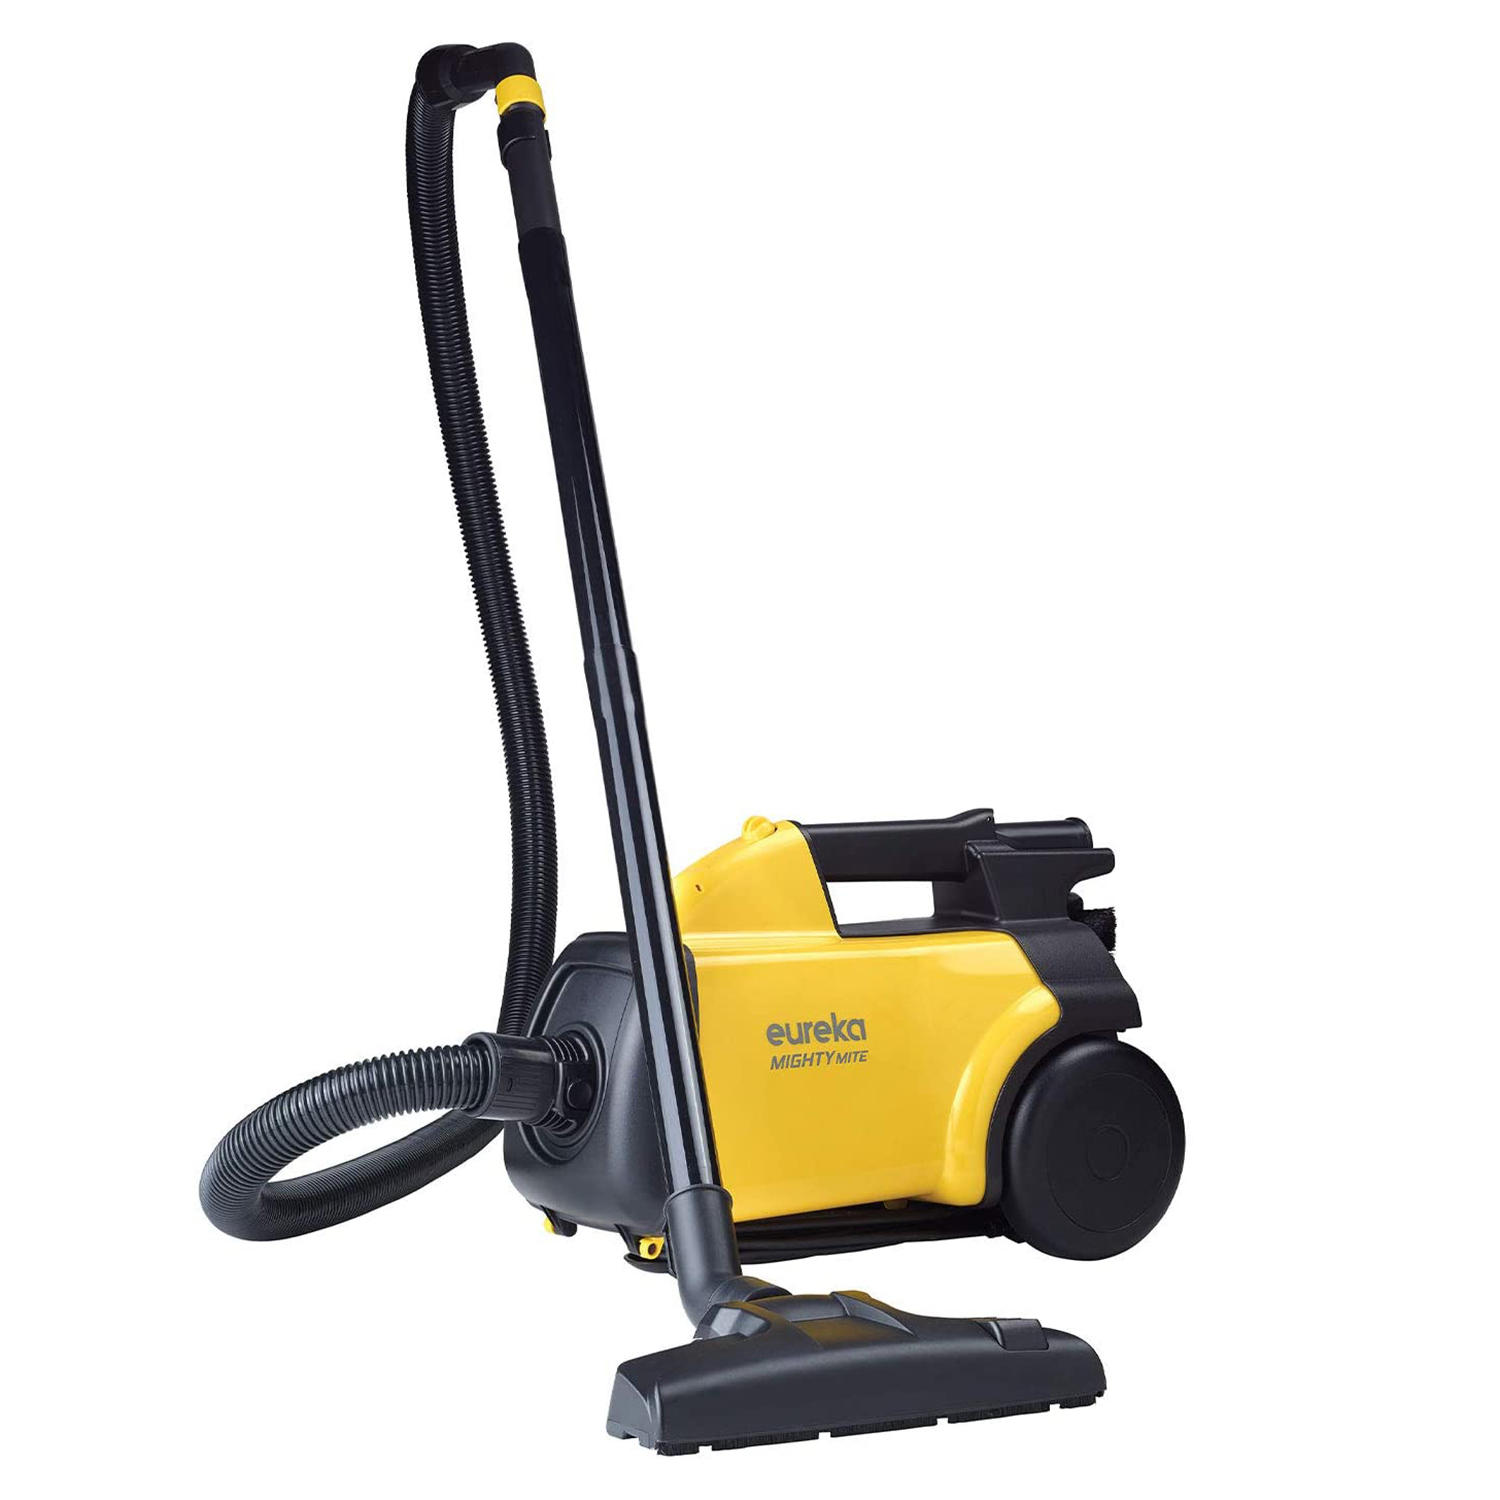 Eureka Mighty Mite 3670 Corded Canister Vacuum